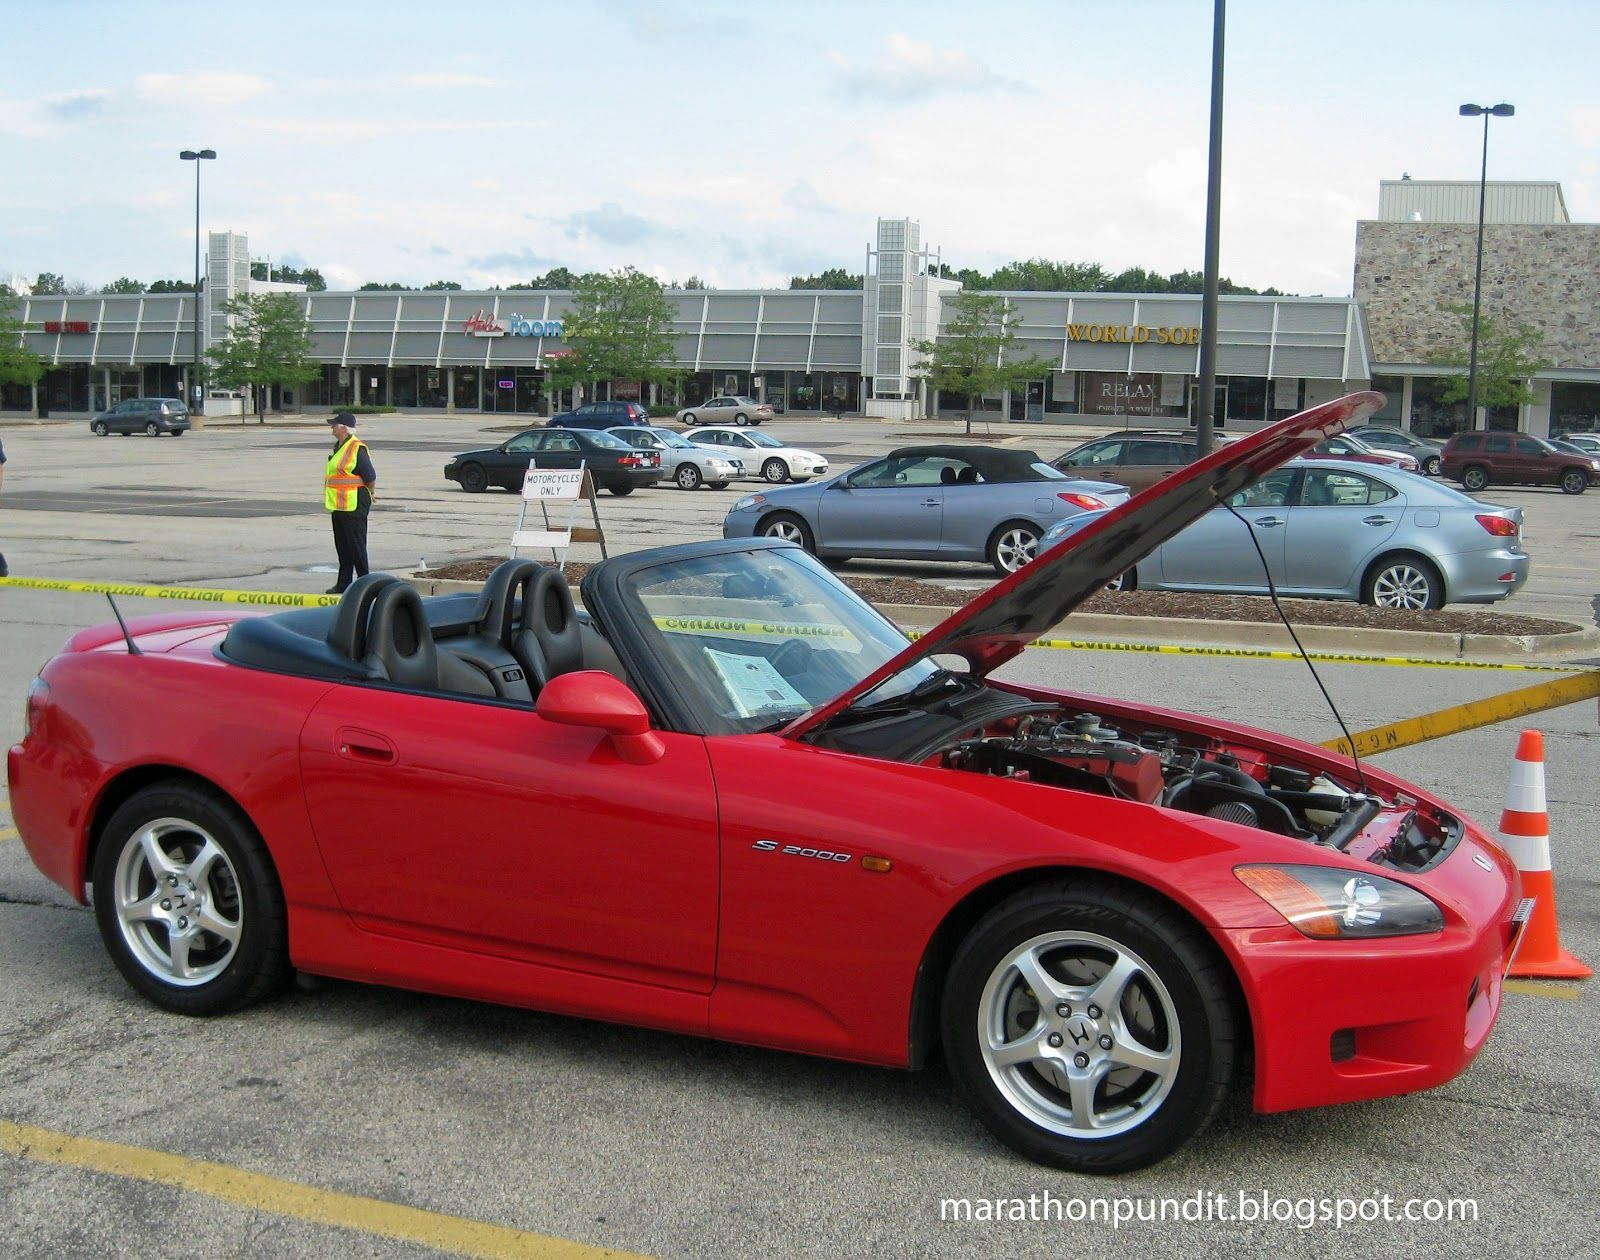 (Photos) Morton Grove Classic Car Show 7/27/12 #mortongrove Morton Grove Classic Car Show, A 1999 edition of a Honda 2000. #mortongrove